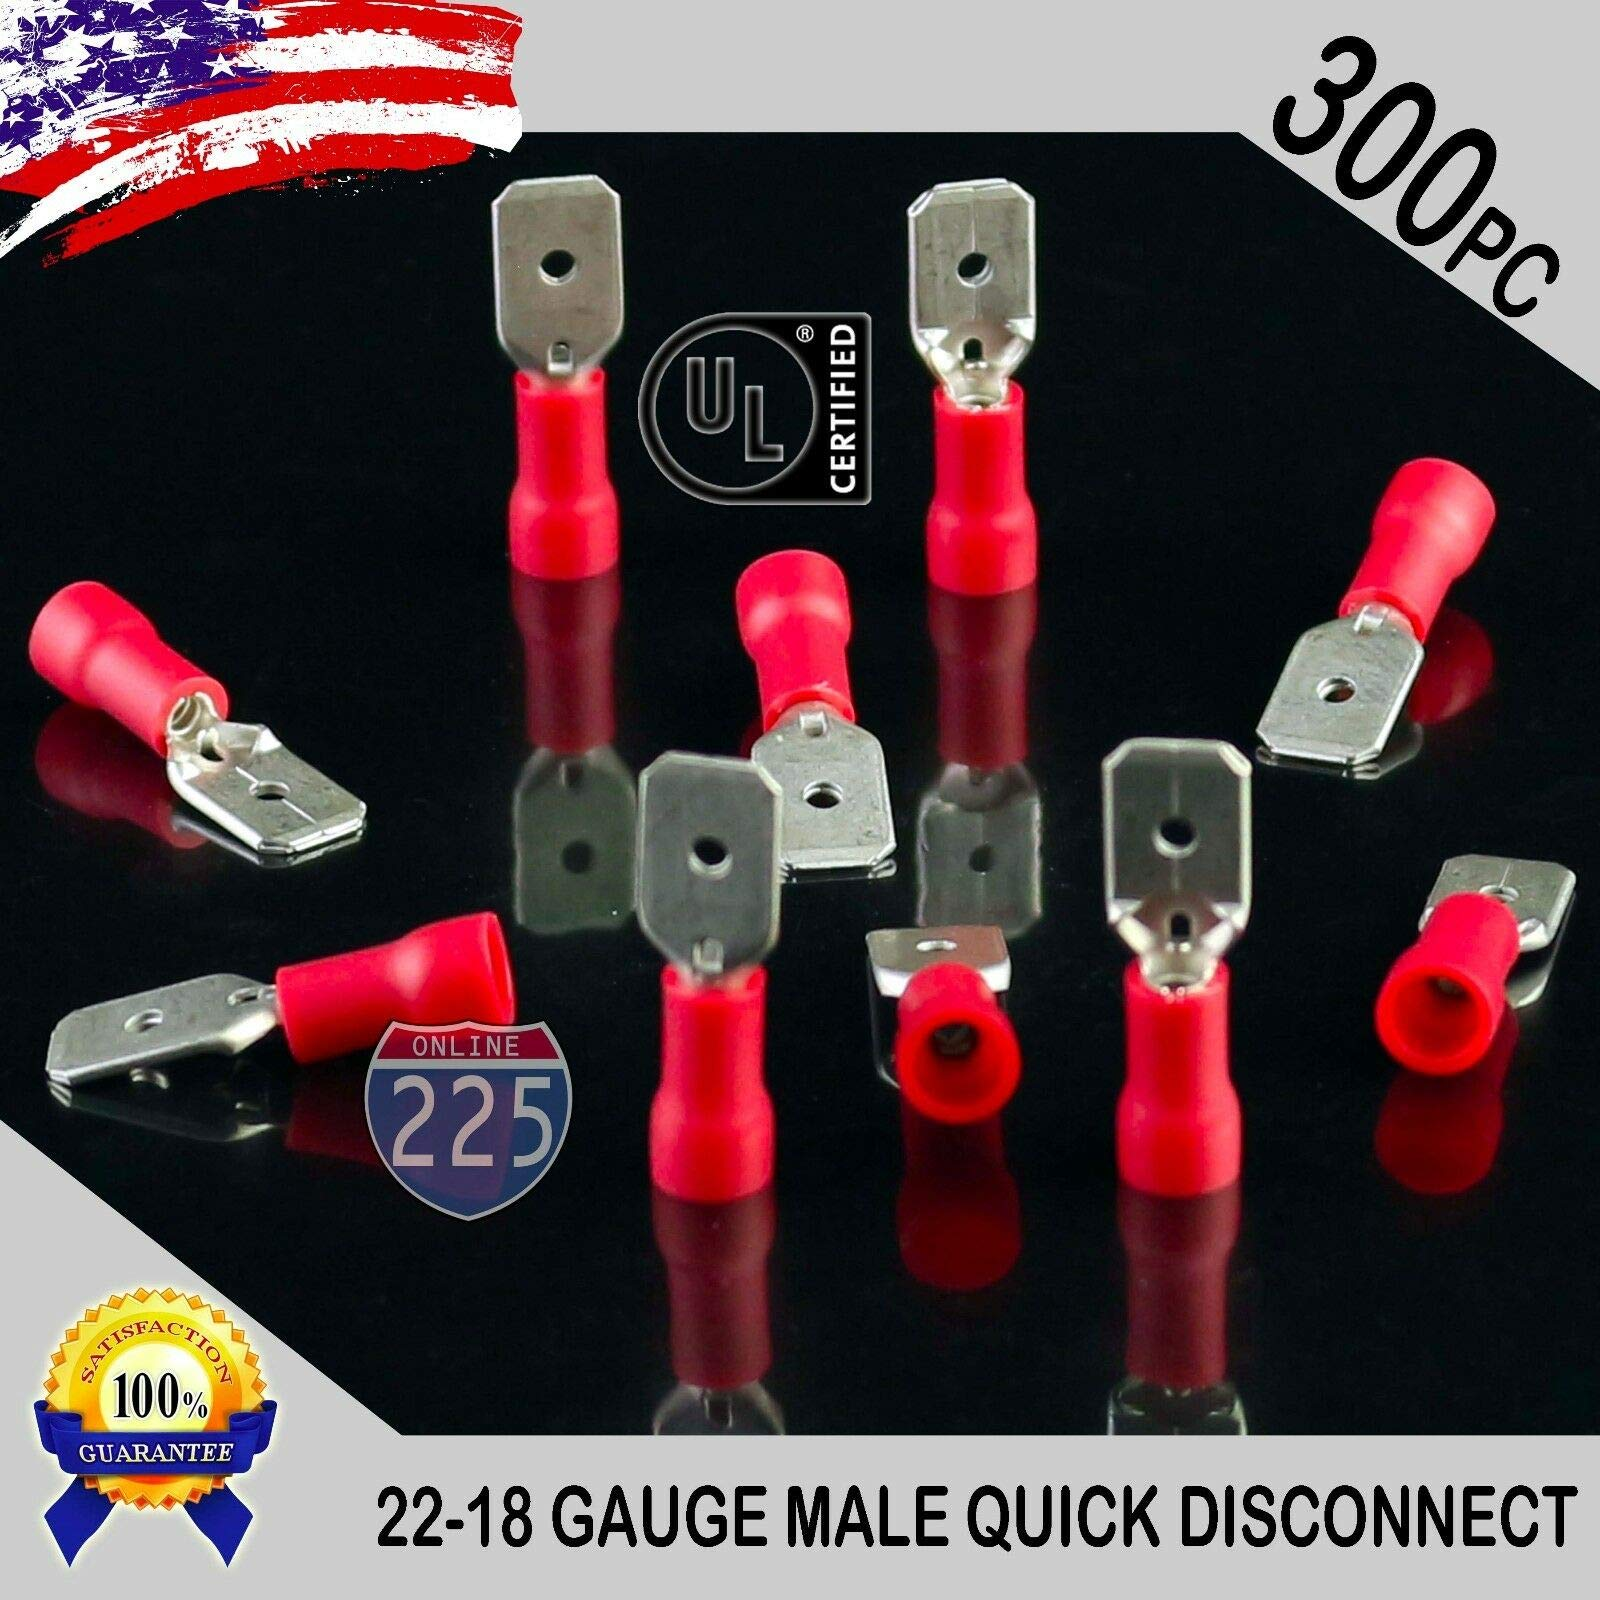 JumpingLight 300 Pack 22-18 Gauge Male Quick Disconnect Red Vinyl Crimp Terminals .250'' US UL Mechanical and Electrical Equipment for Buildings